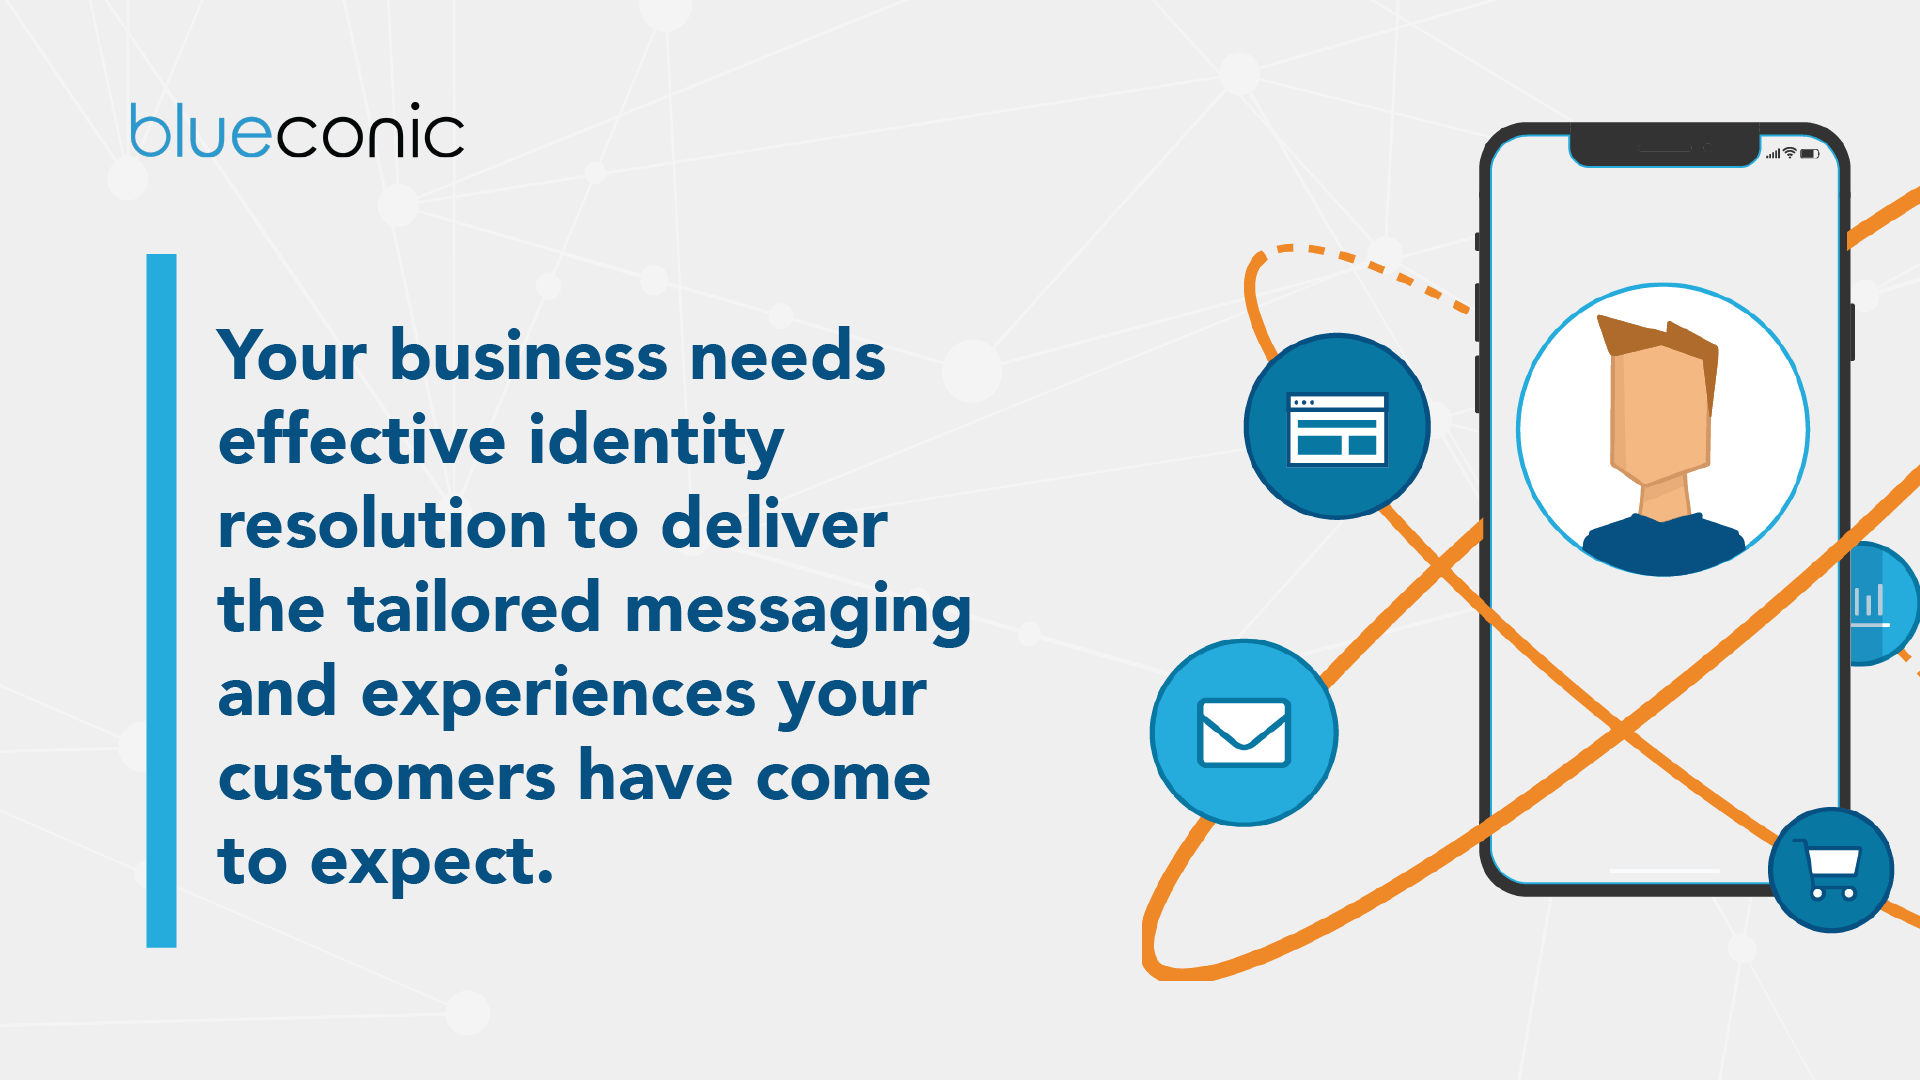 Your business needs effective identity resolution to deliver the tailored messaging and experiences your customers have come to expect.